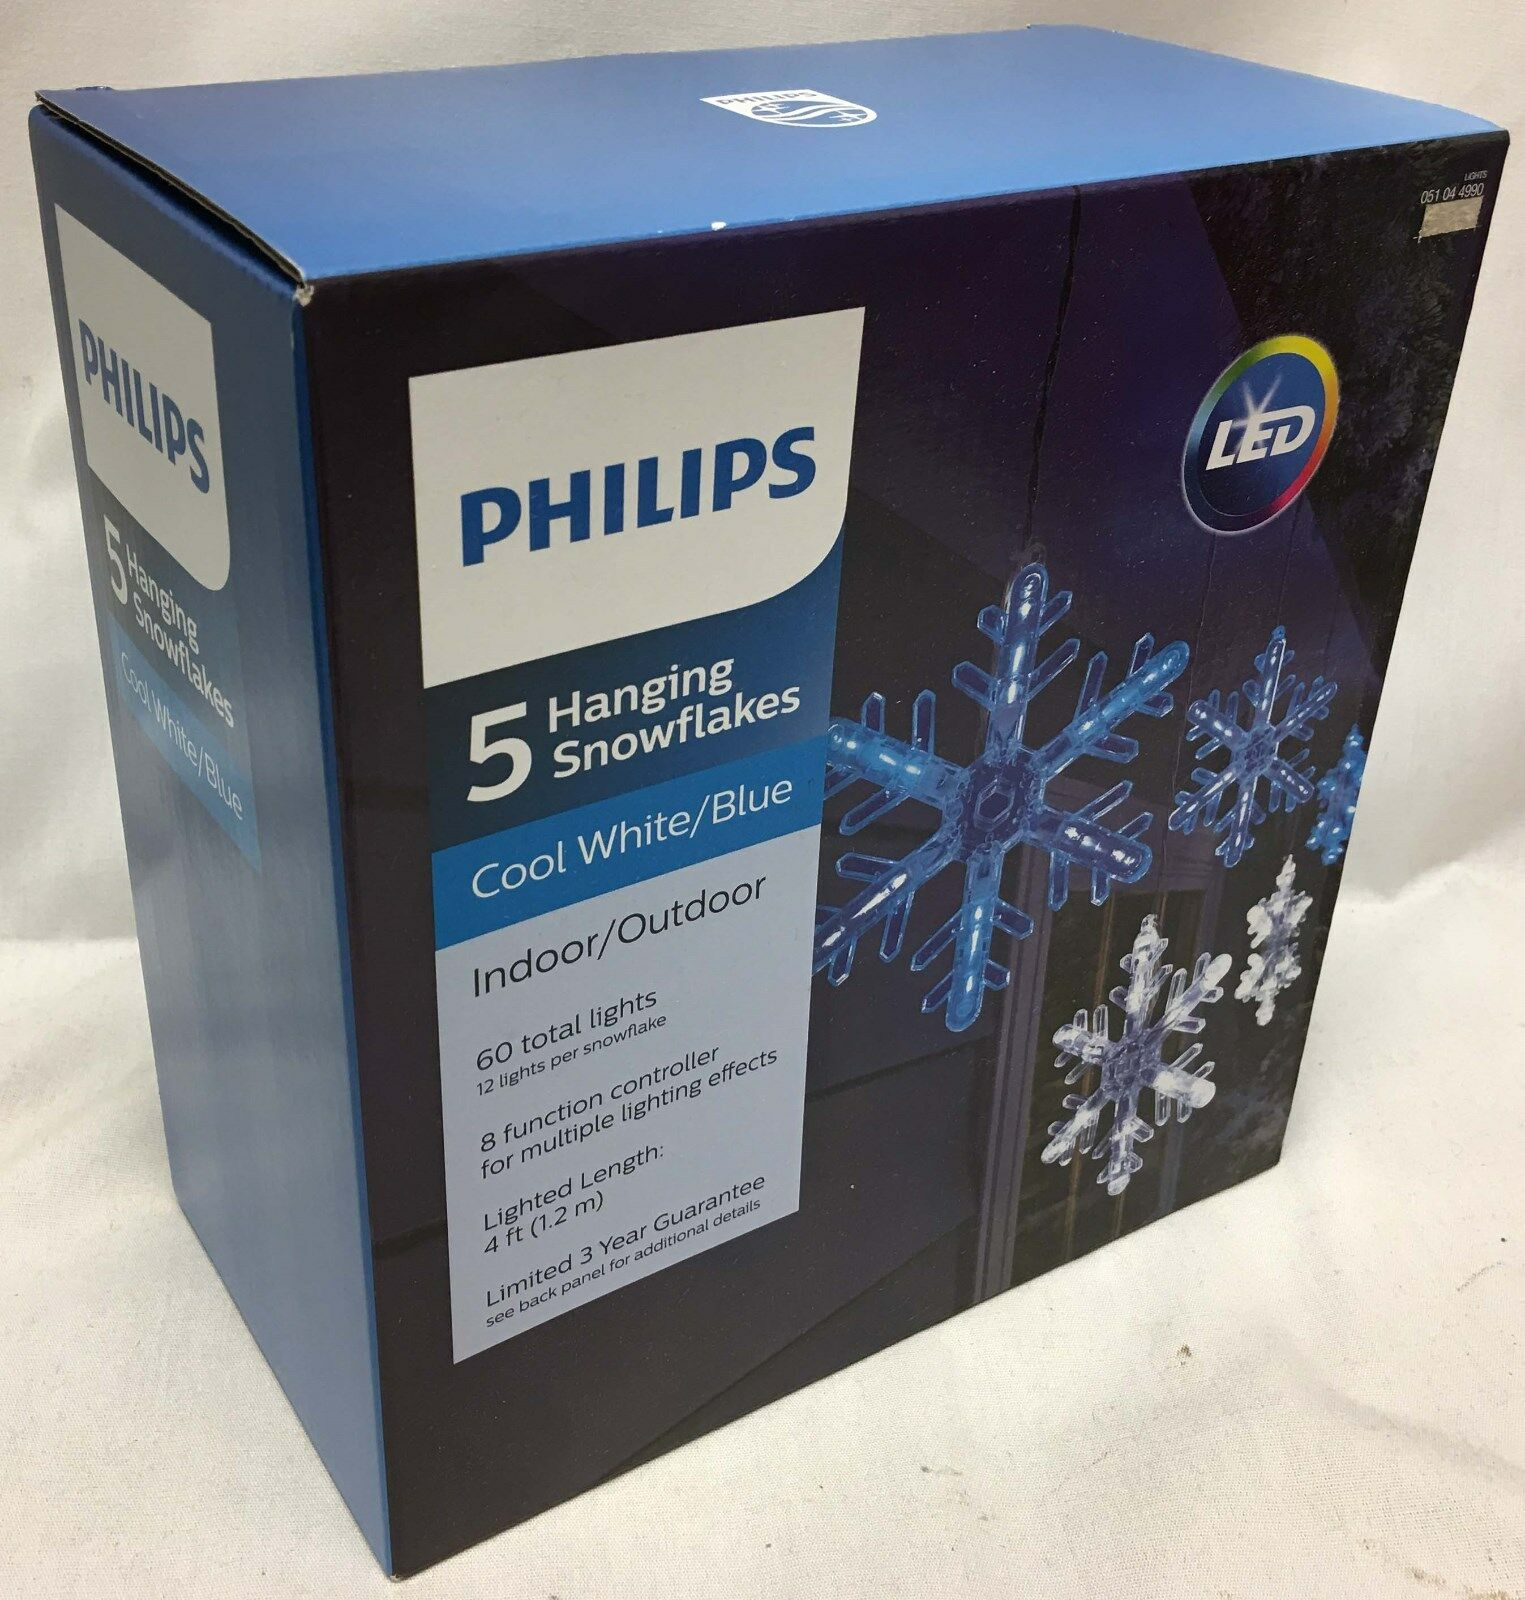 Set of 3 Philips 5 Cool White/blue Hanging Snowflakes Lights White ...